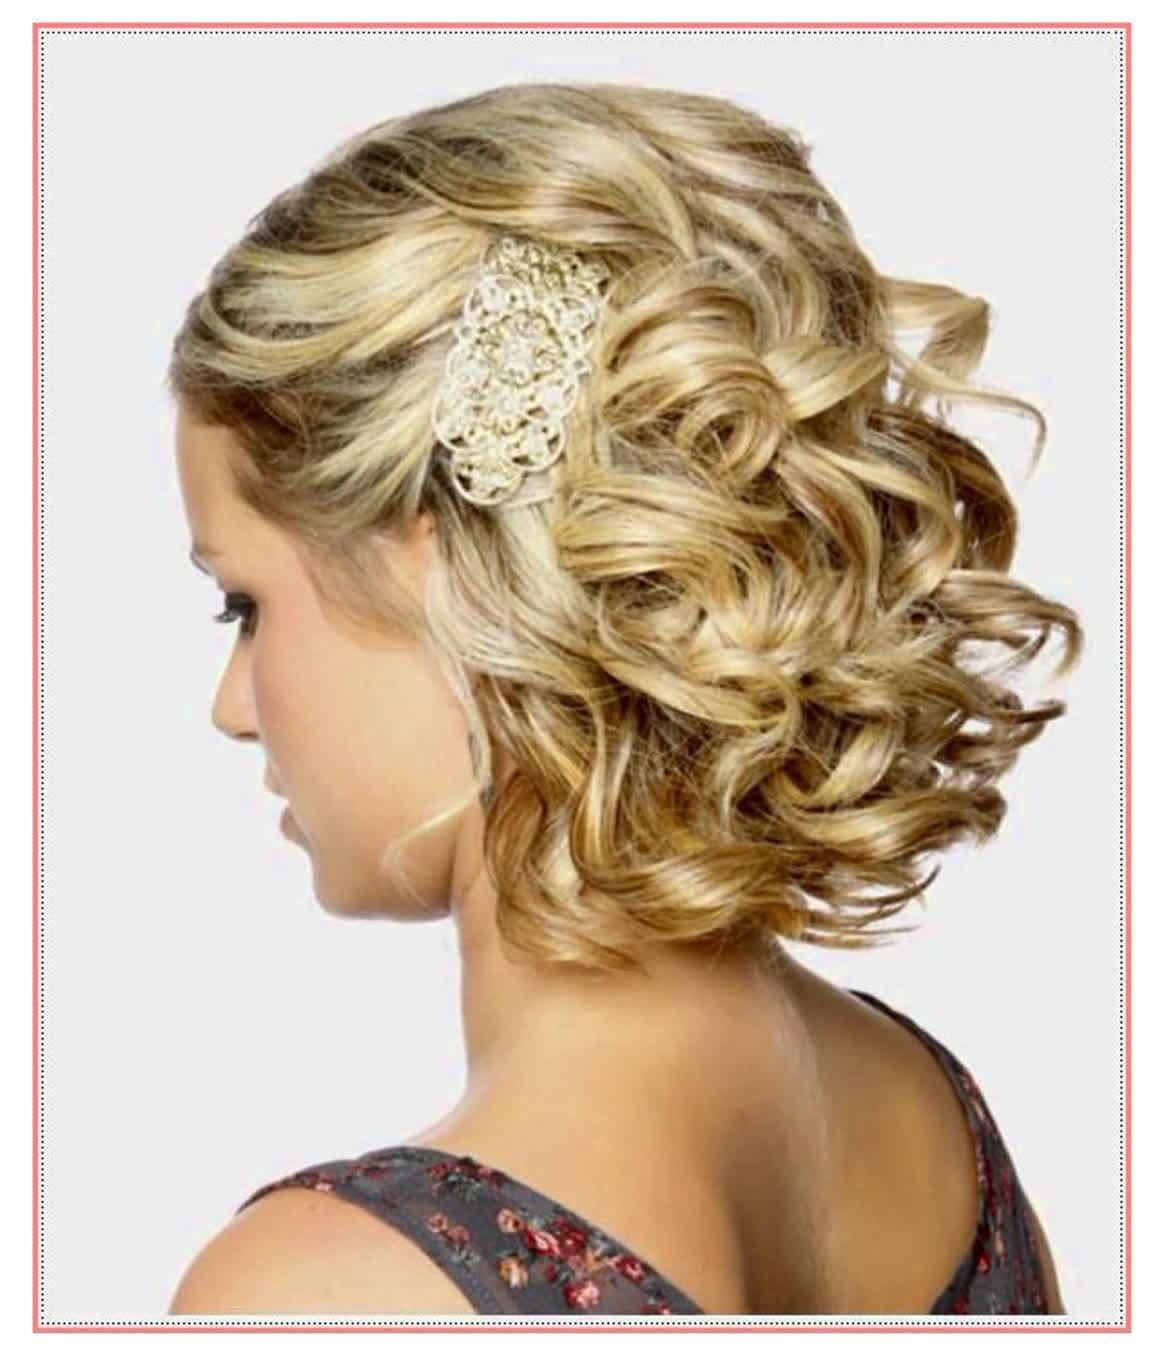 Hairstyle for short hair for js prom hairstyles for short hair